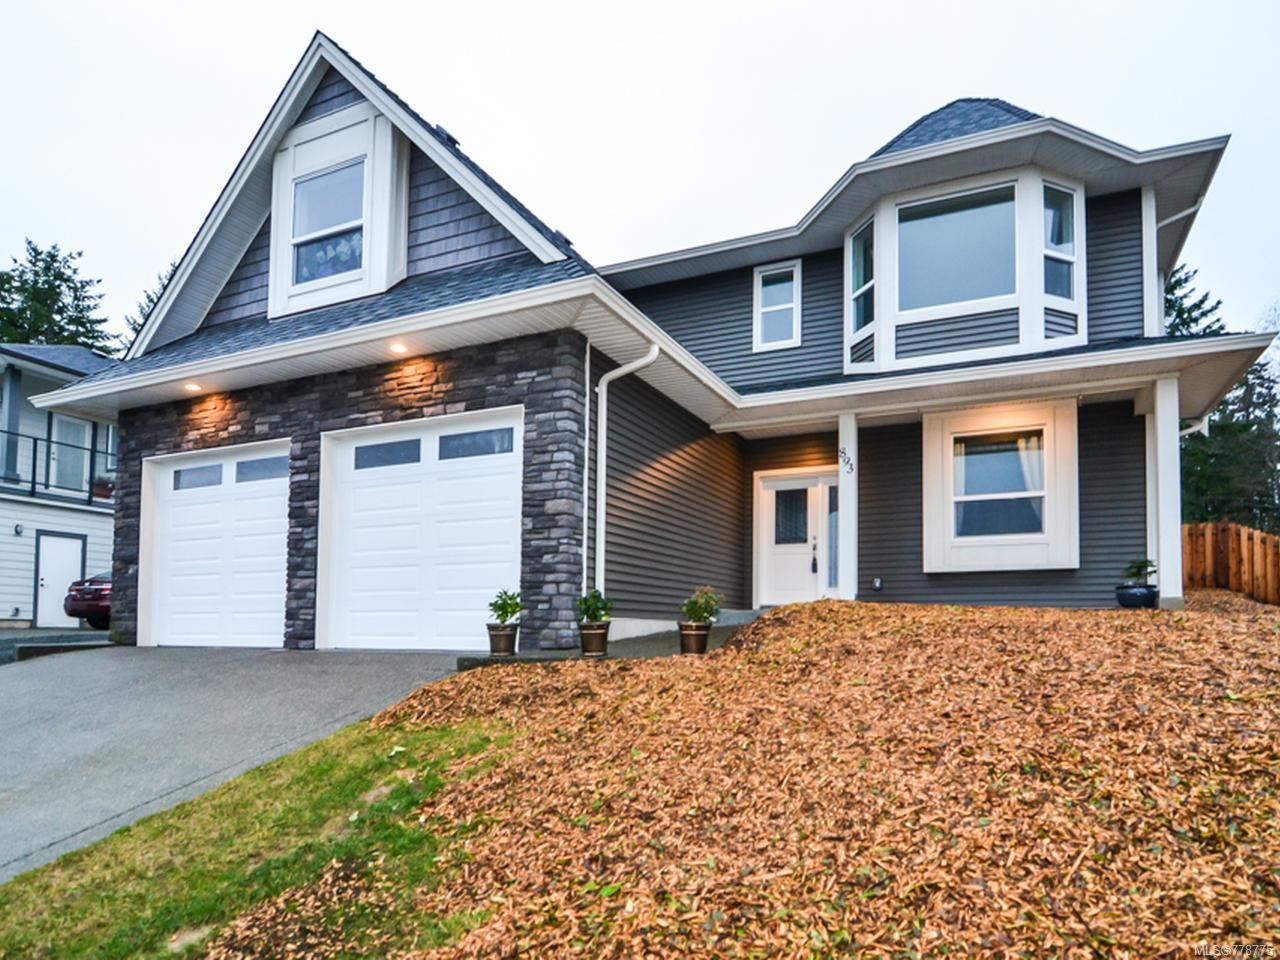 Main Photo: 893 TIMBERLINE DRIVE in CAMPBELL RIVER: CR Willow Point House for sale (Campbell River)  : MLS®# 778775